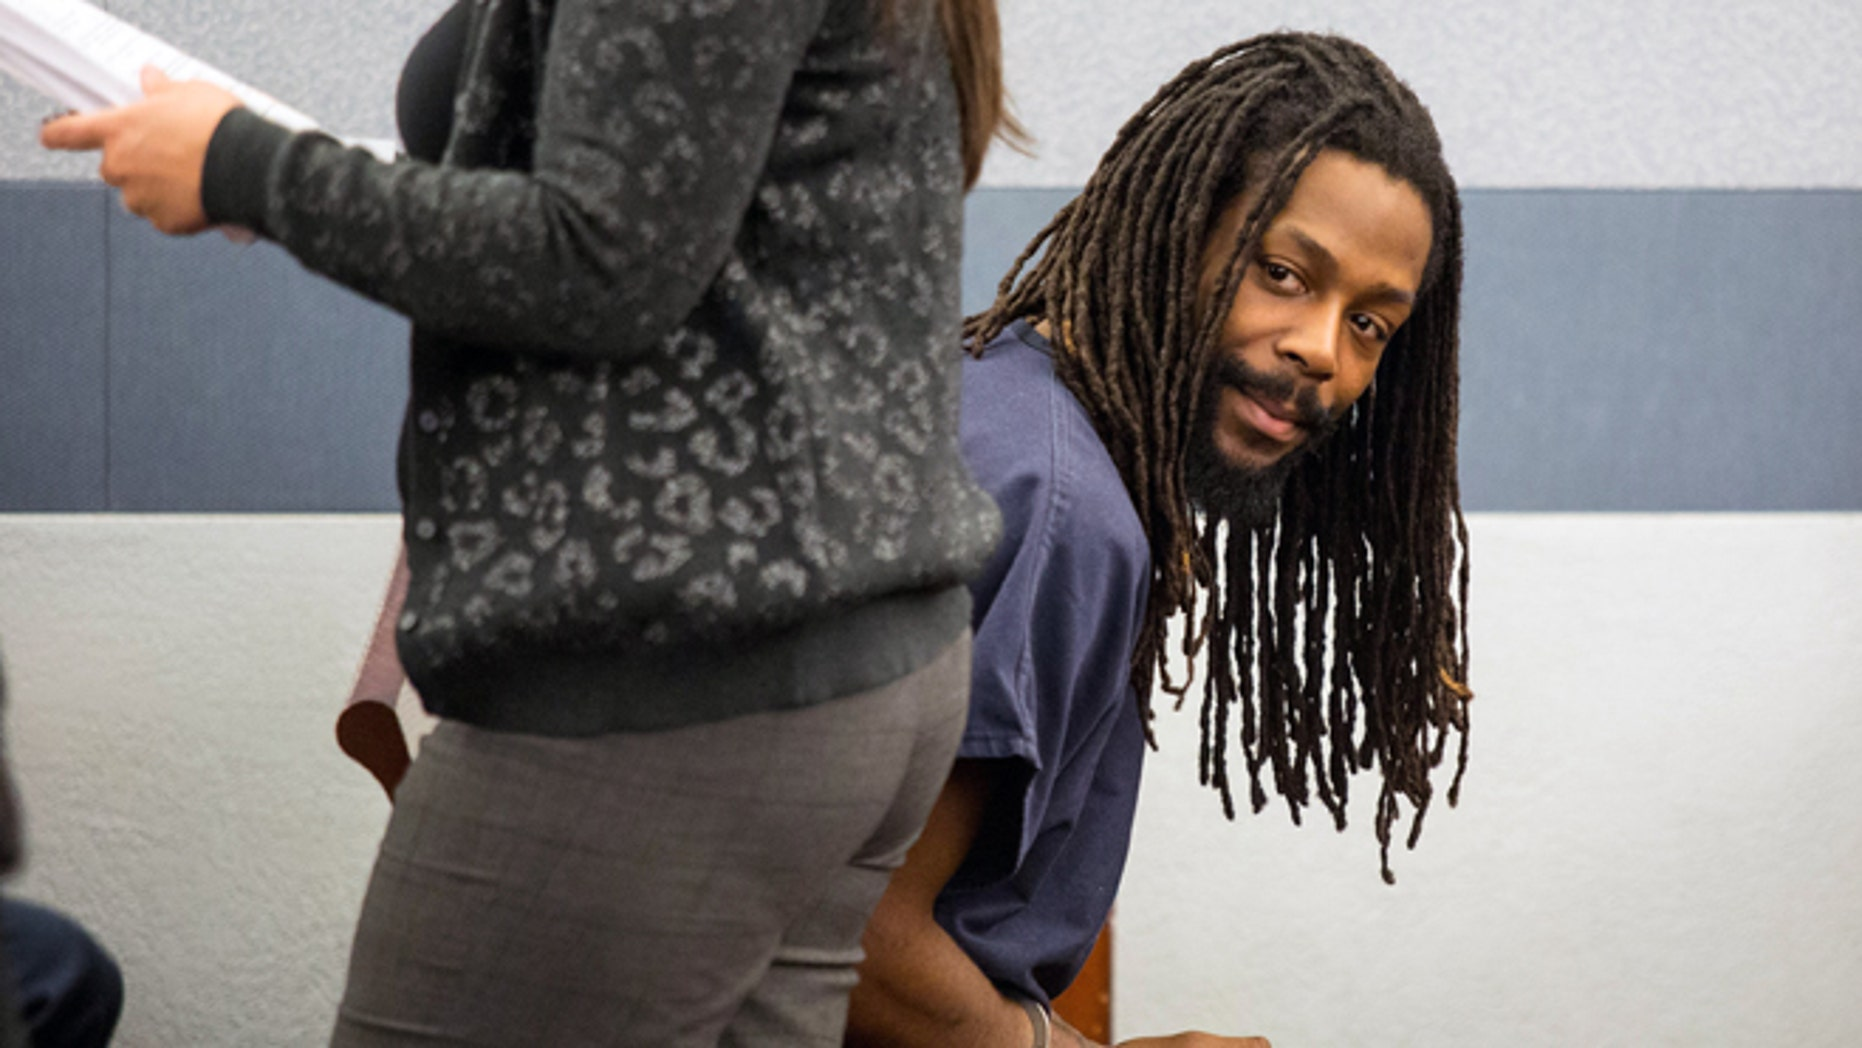 Feb. 21, 2014: Kirk Bills, 27, left, appears in court during his arrest warrant hearing at the Regional Justice Center in Las Vegas.